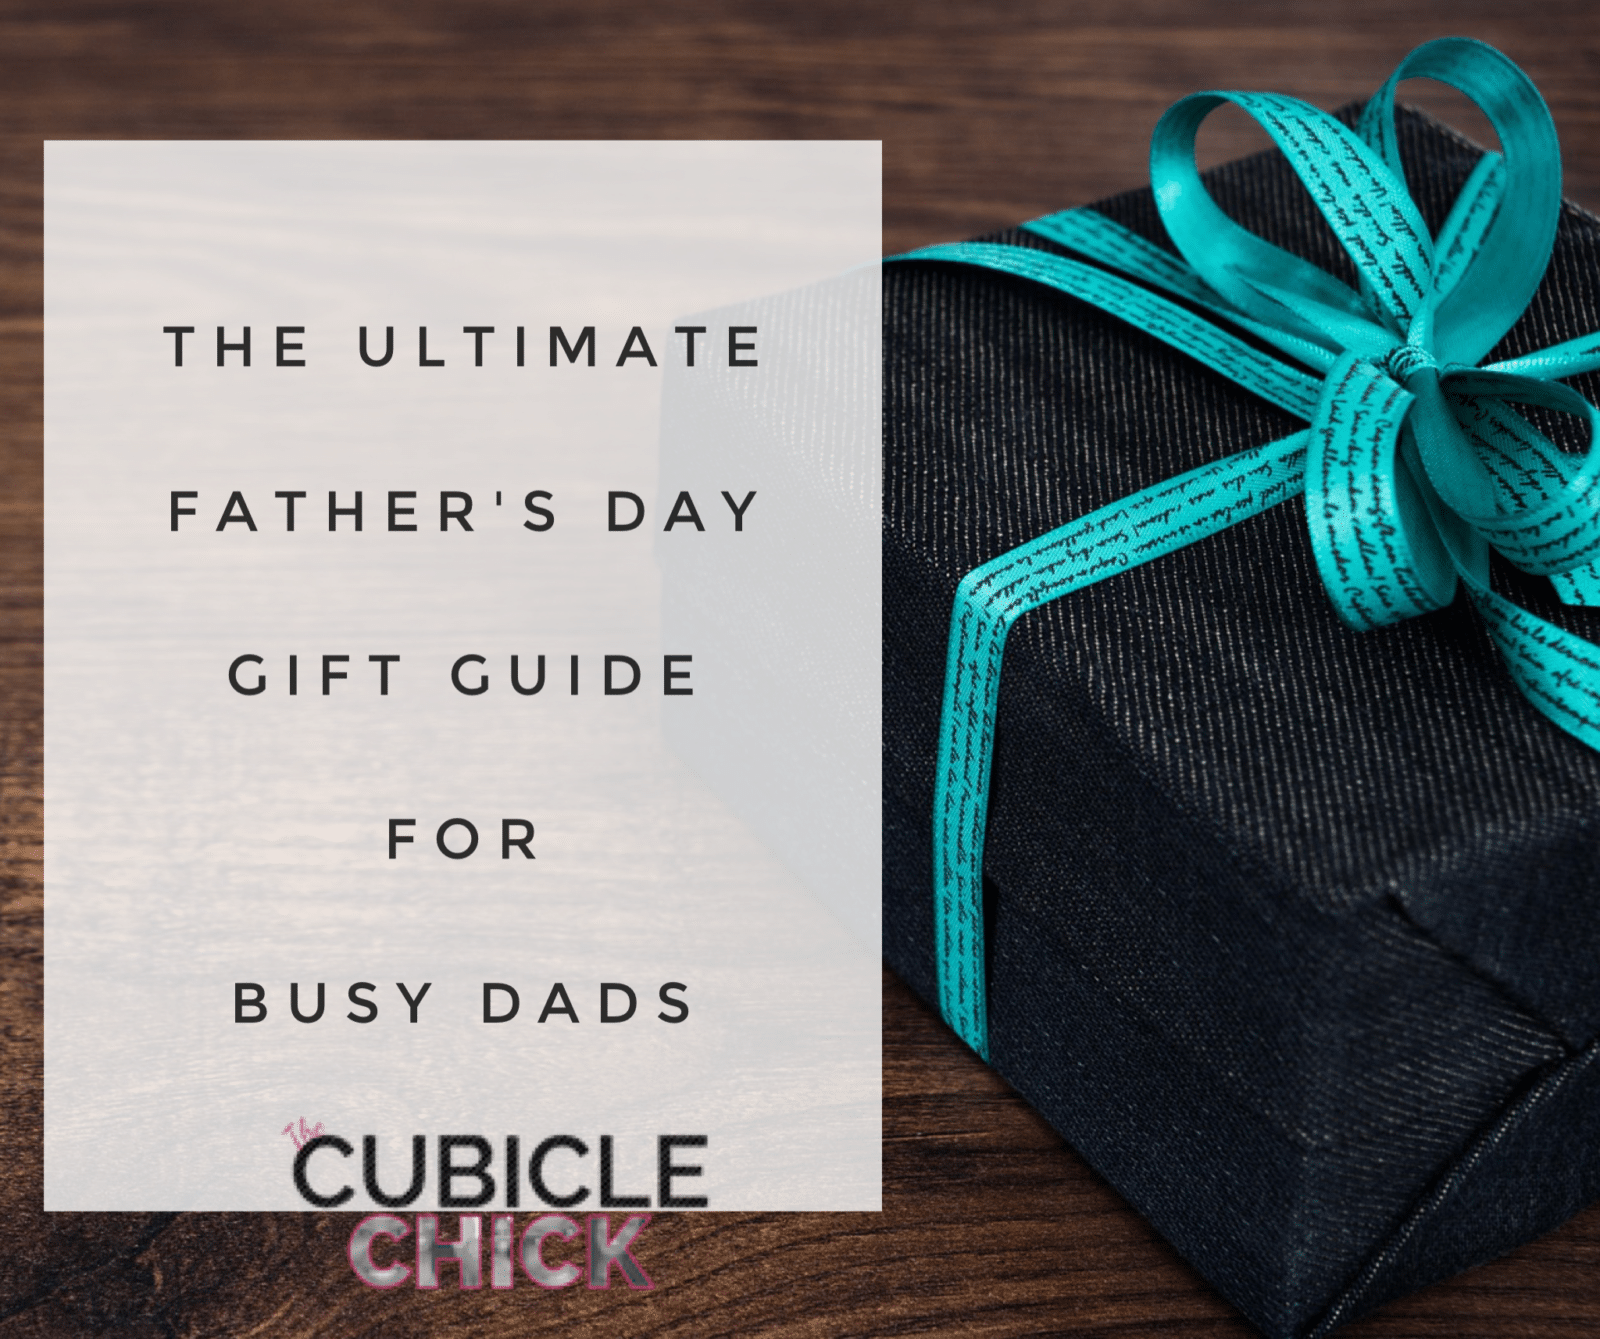 Gifts For Architects The Ultimate Guide: The Ultimate Father's Day Gift Guide For Busy Dads